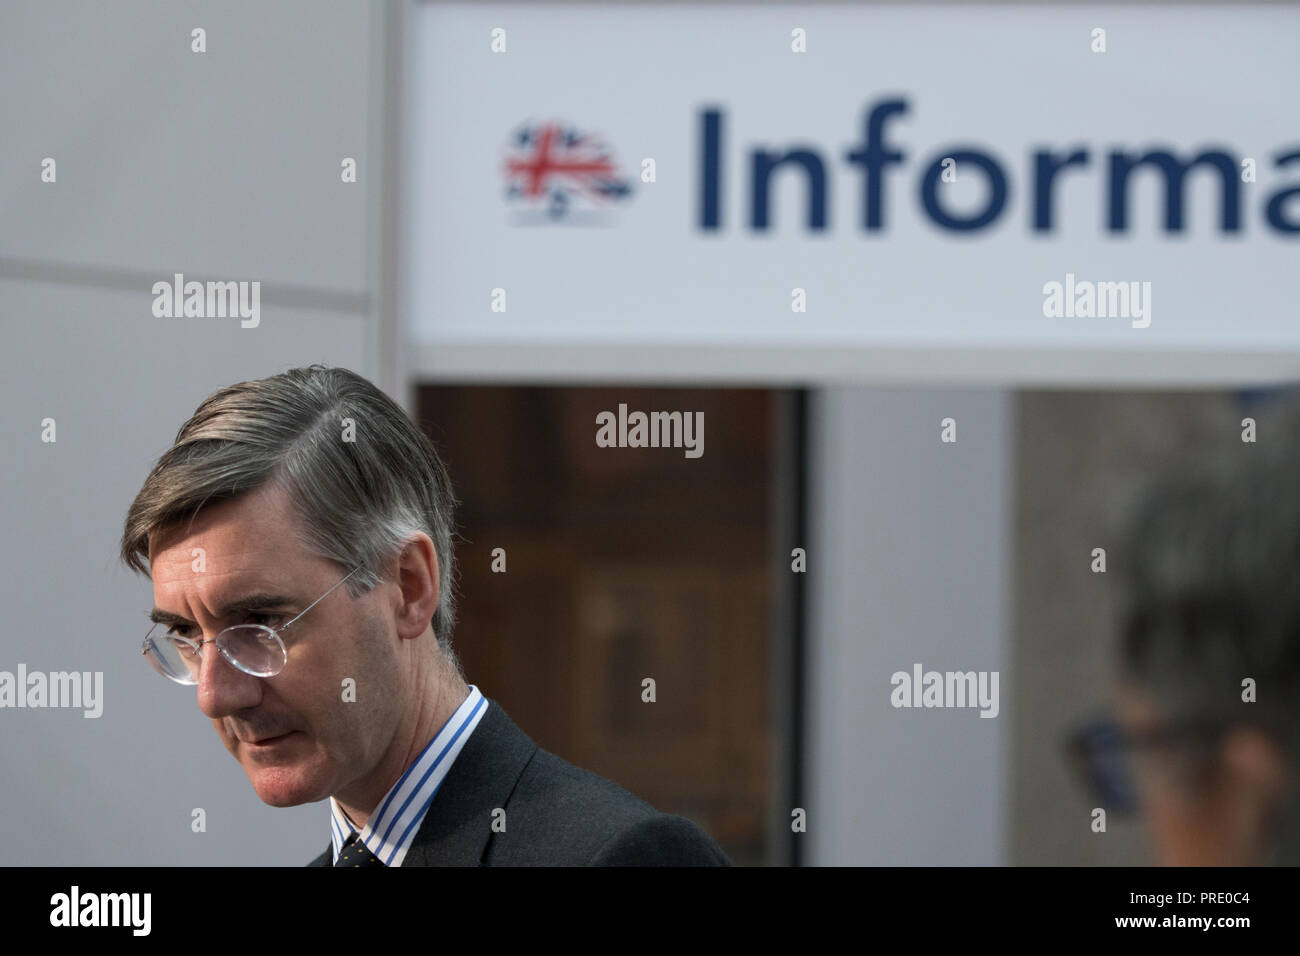 Birmingham, UK. 1st October, 2018. Jacob Rees-Mogg at Conservative Party Conference 2018 Credit: Benjamin Wareing/Alamy Live News - Stock Image